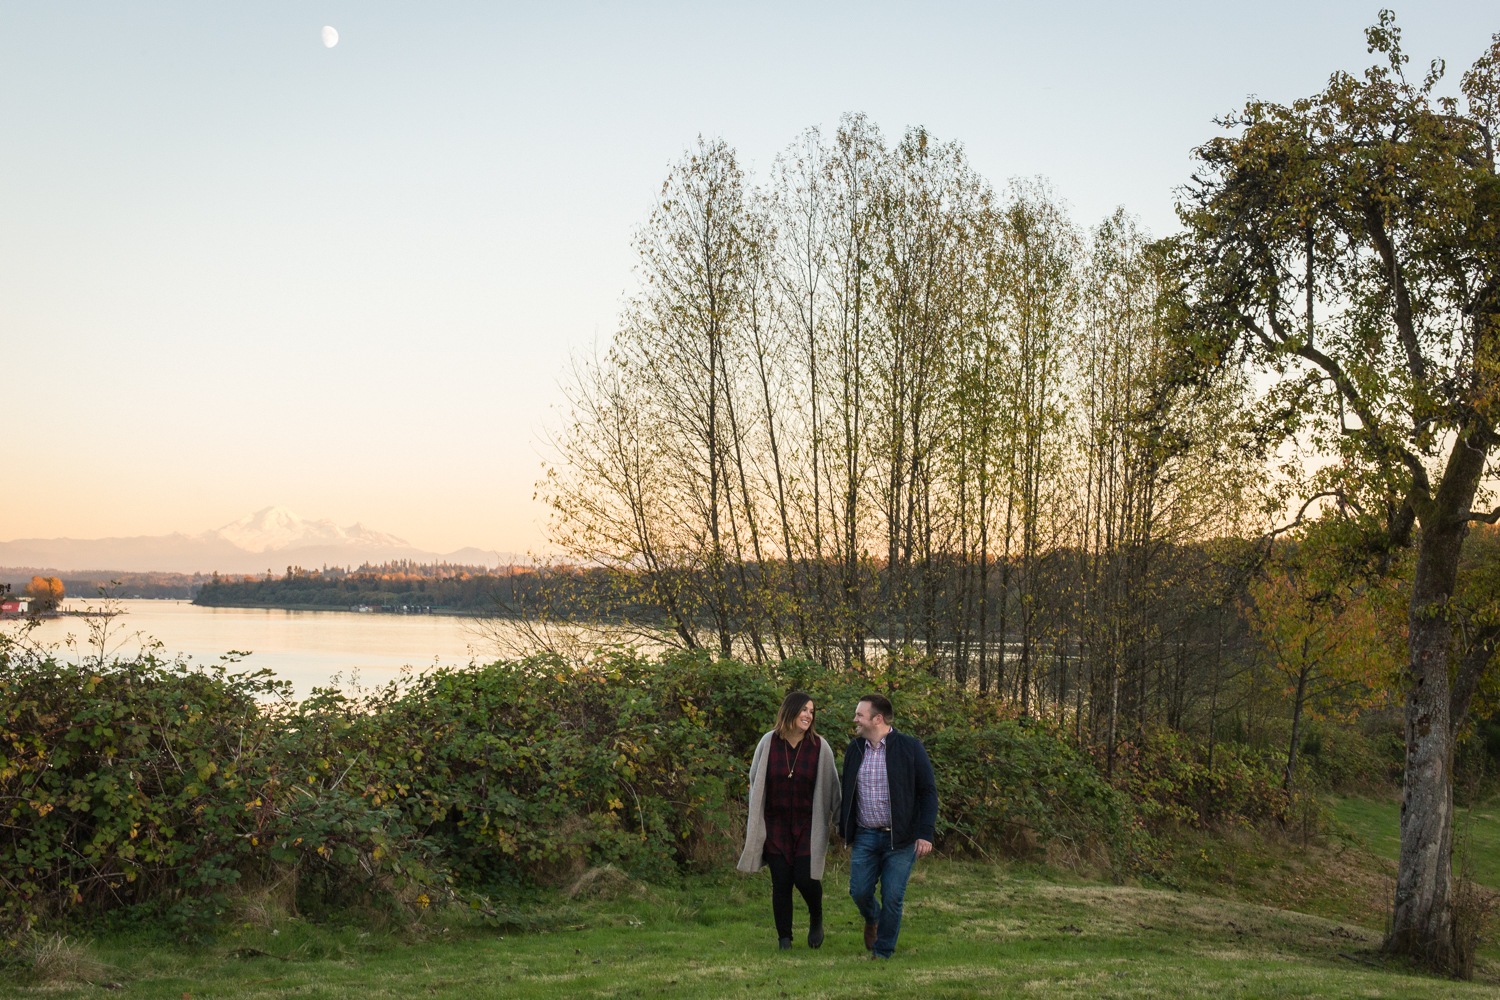 FORT LANGLEY ENGAGEMENT – CAROLYN & BRADY